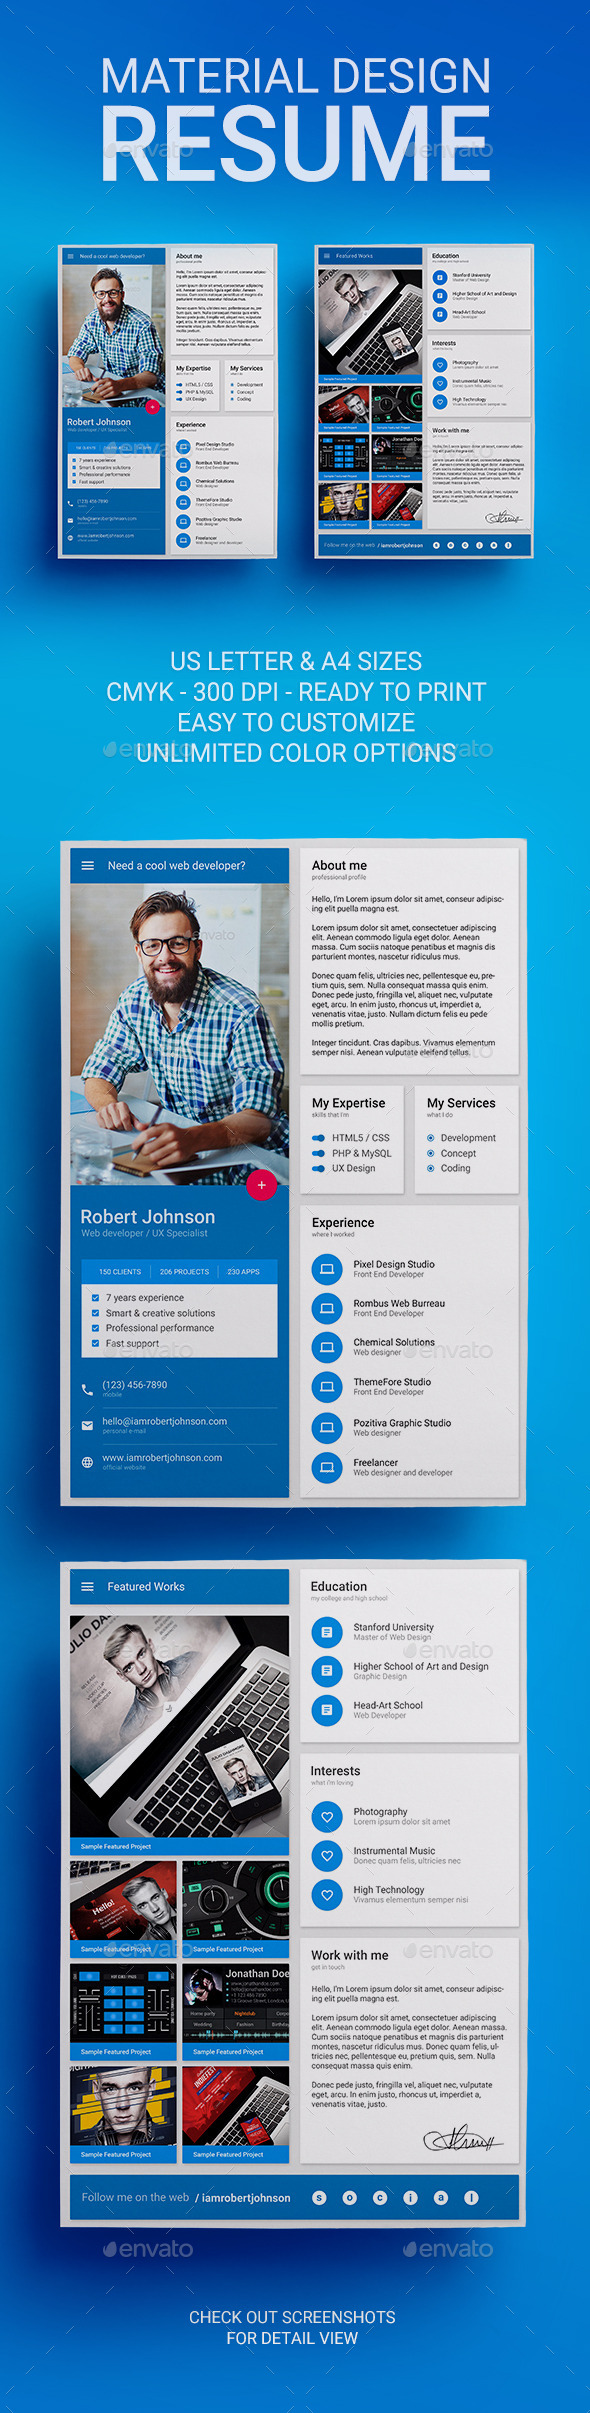 GraphicRiver MaDe Material Design Resume CV Template 10546271